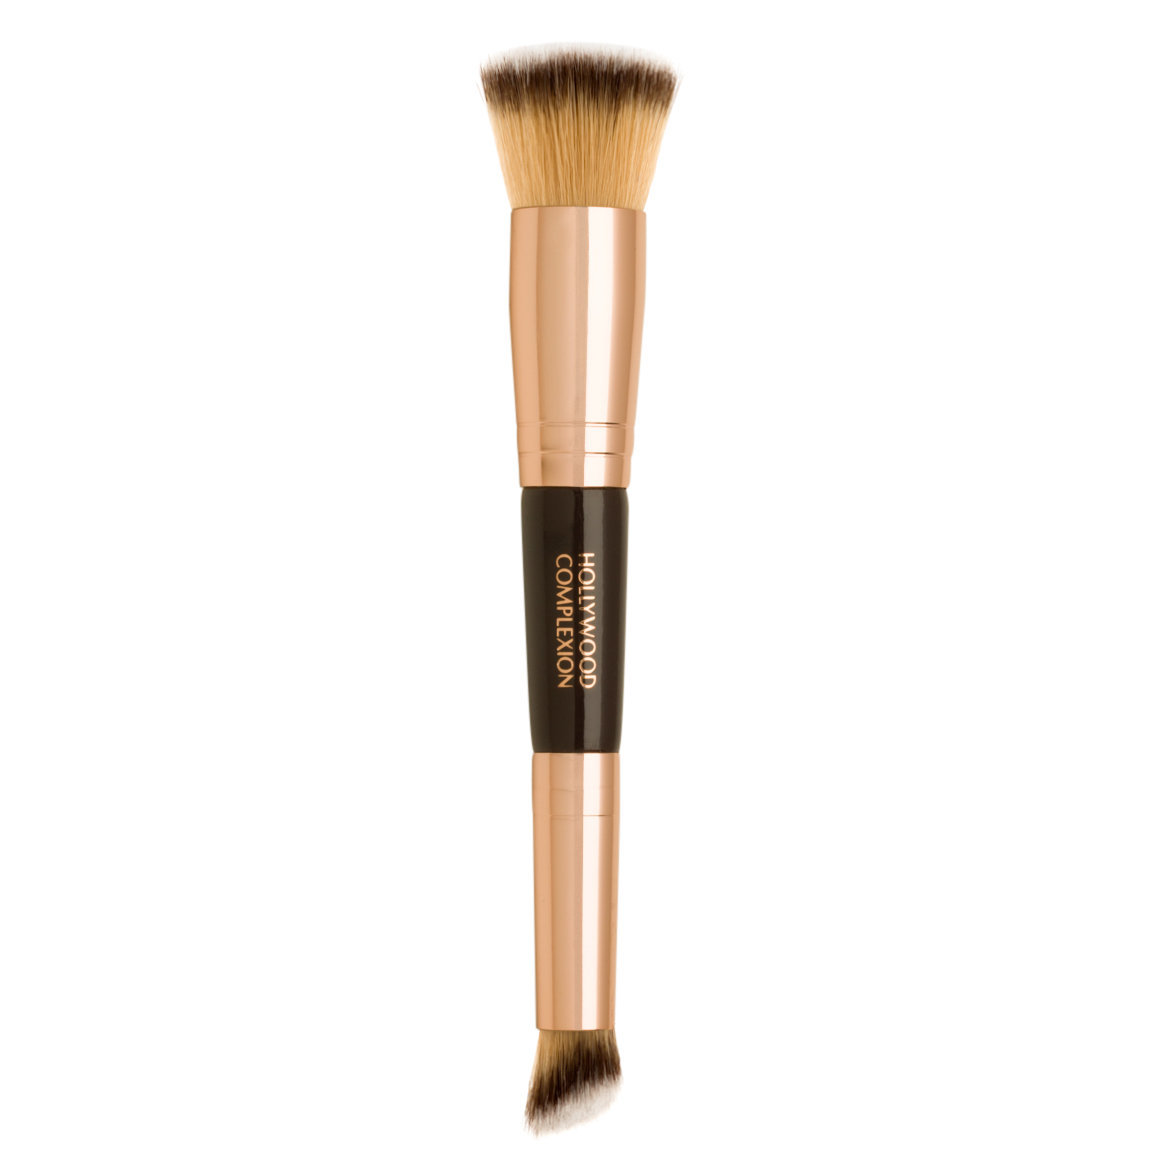 Charlotte Tilbury Hollywood Complexion Brush product smear.